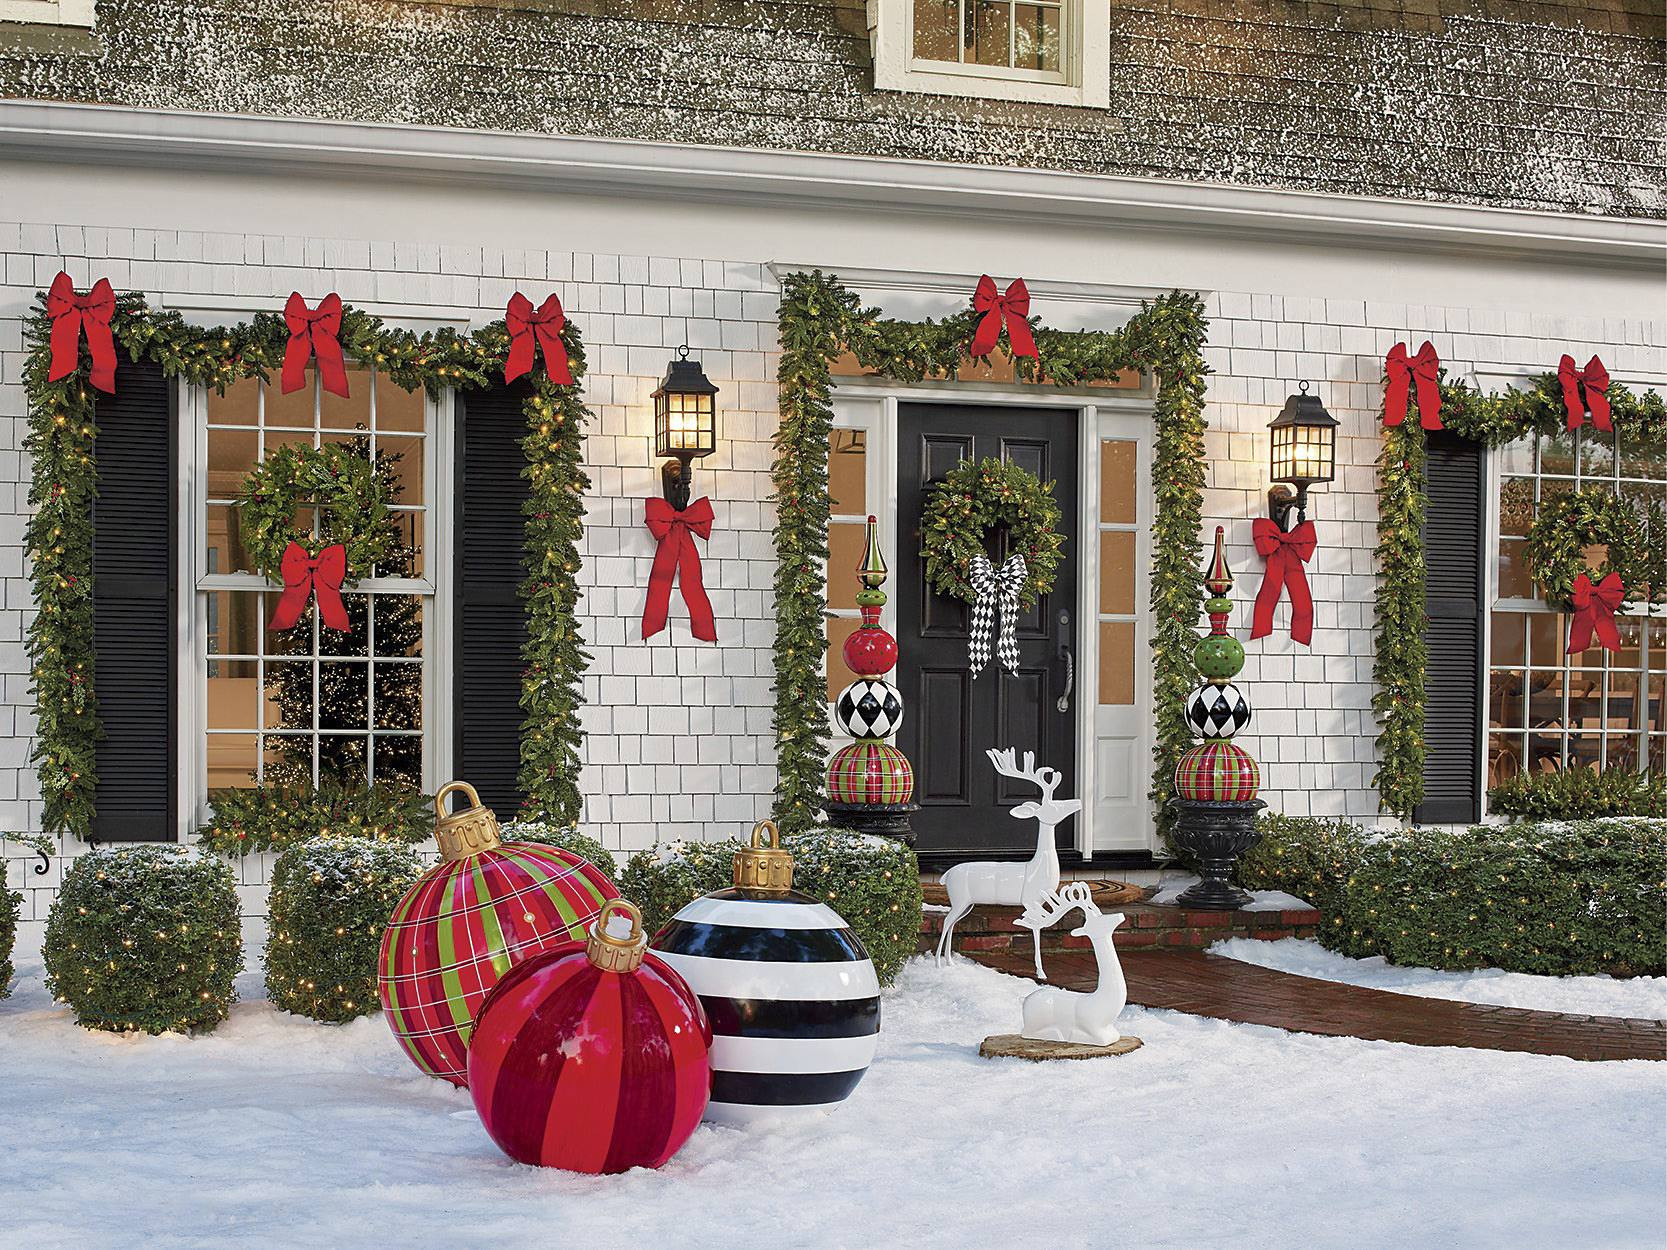 Christmas Decorations For Front Porch  Christmas Porch Decorations 15 Holly Jolly Looks